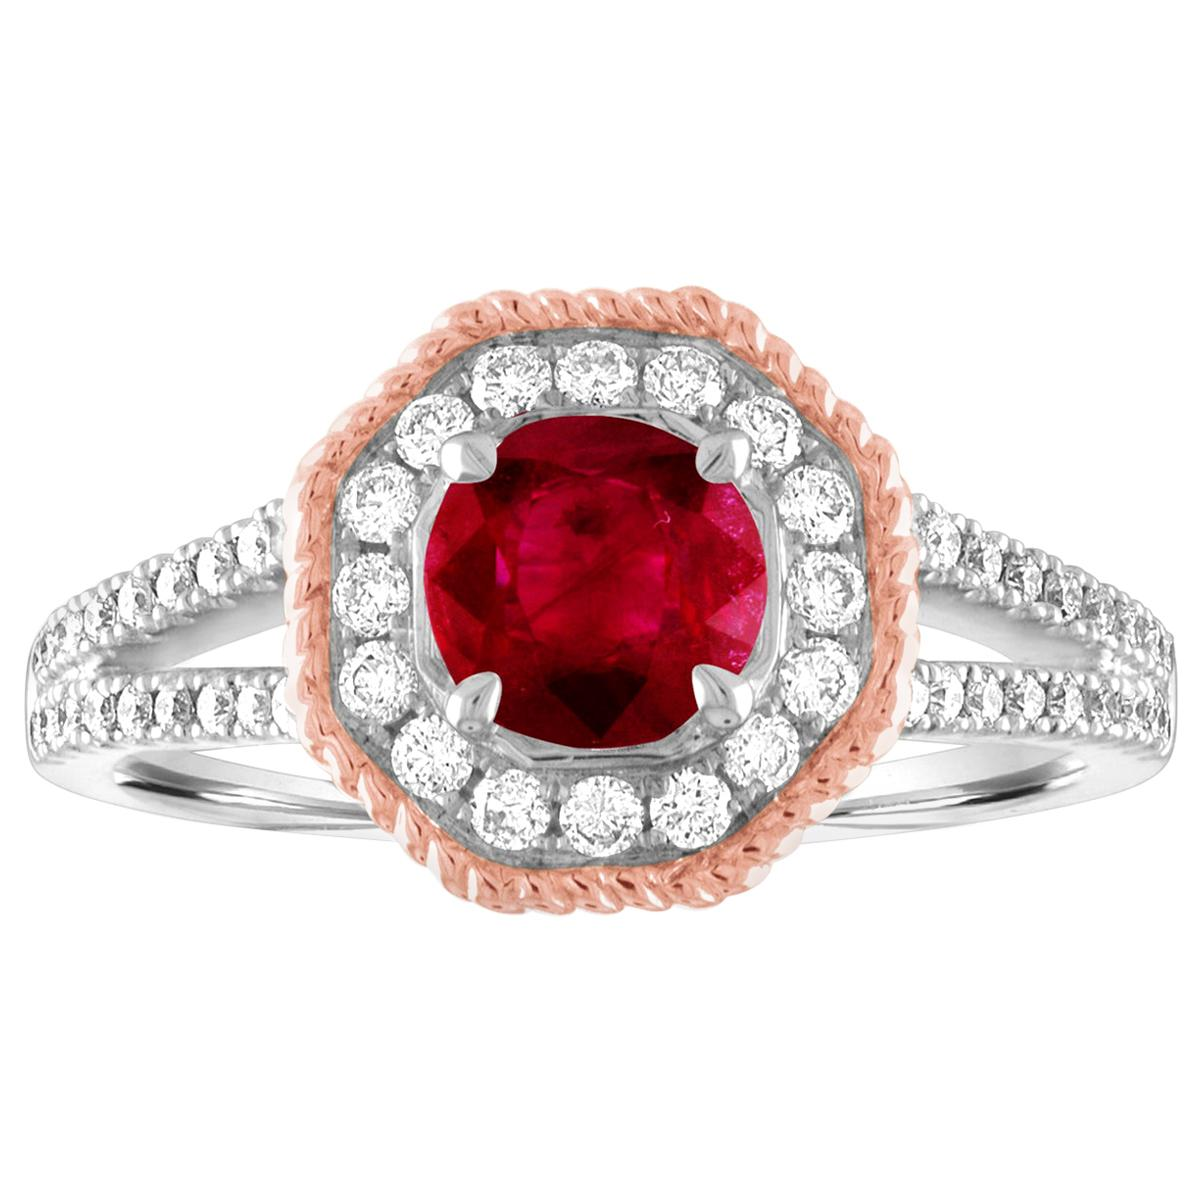 AGL Certified 1.05 Carat Round Ruby Diamond Gold Ring